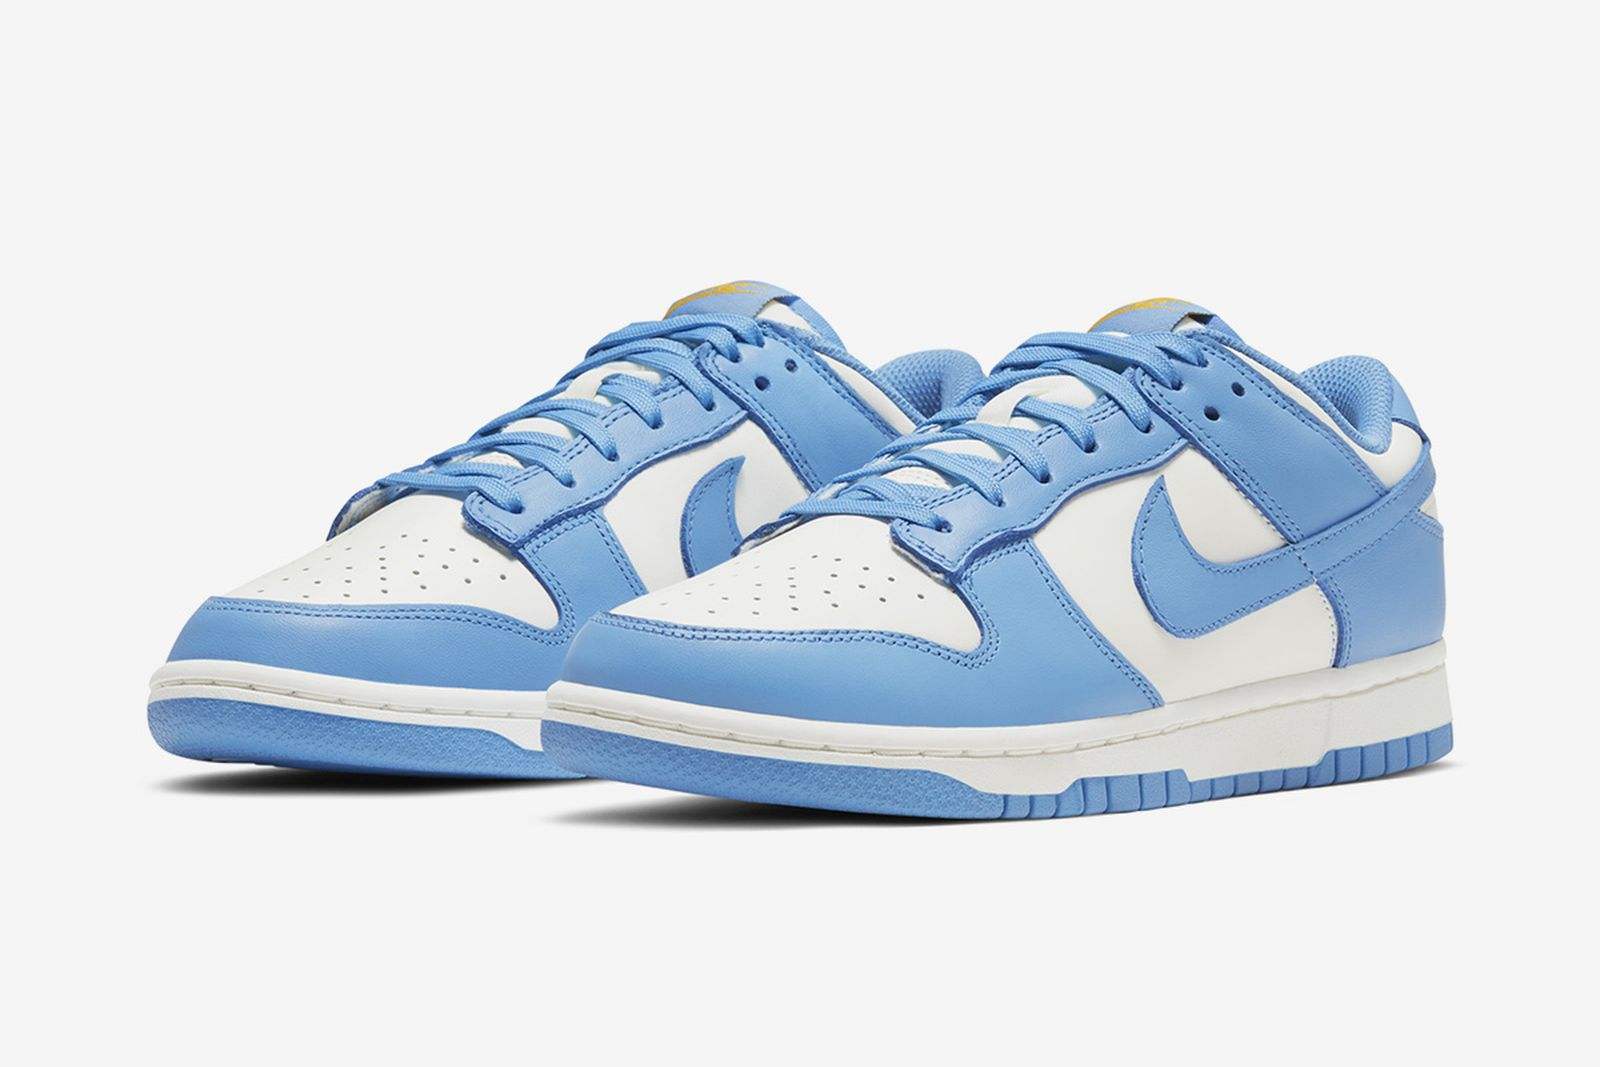 nike-dunk-spring-2021-release-date-price-1-03